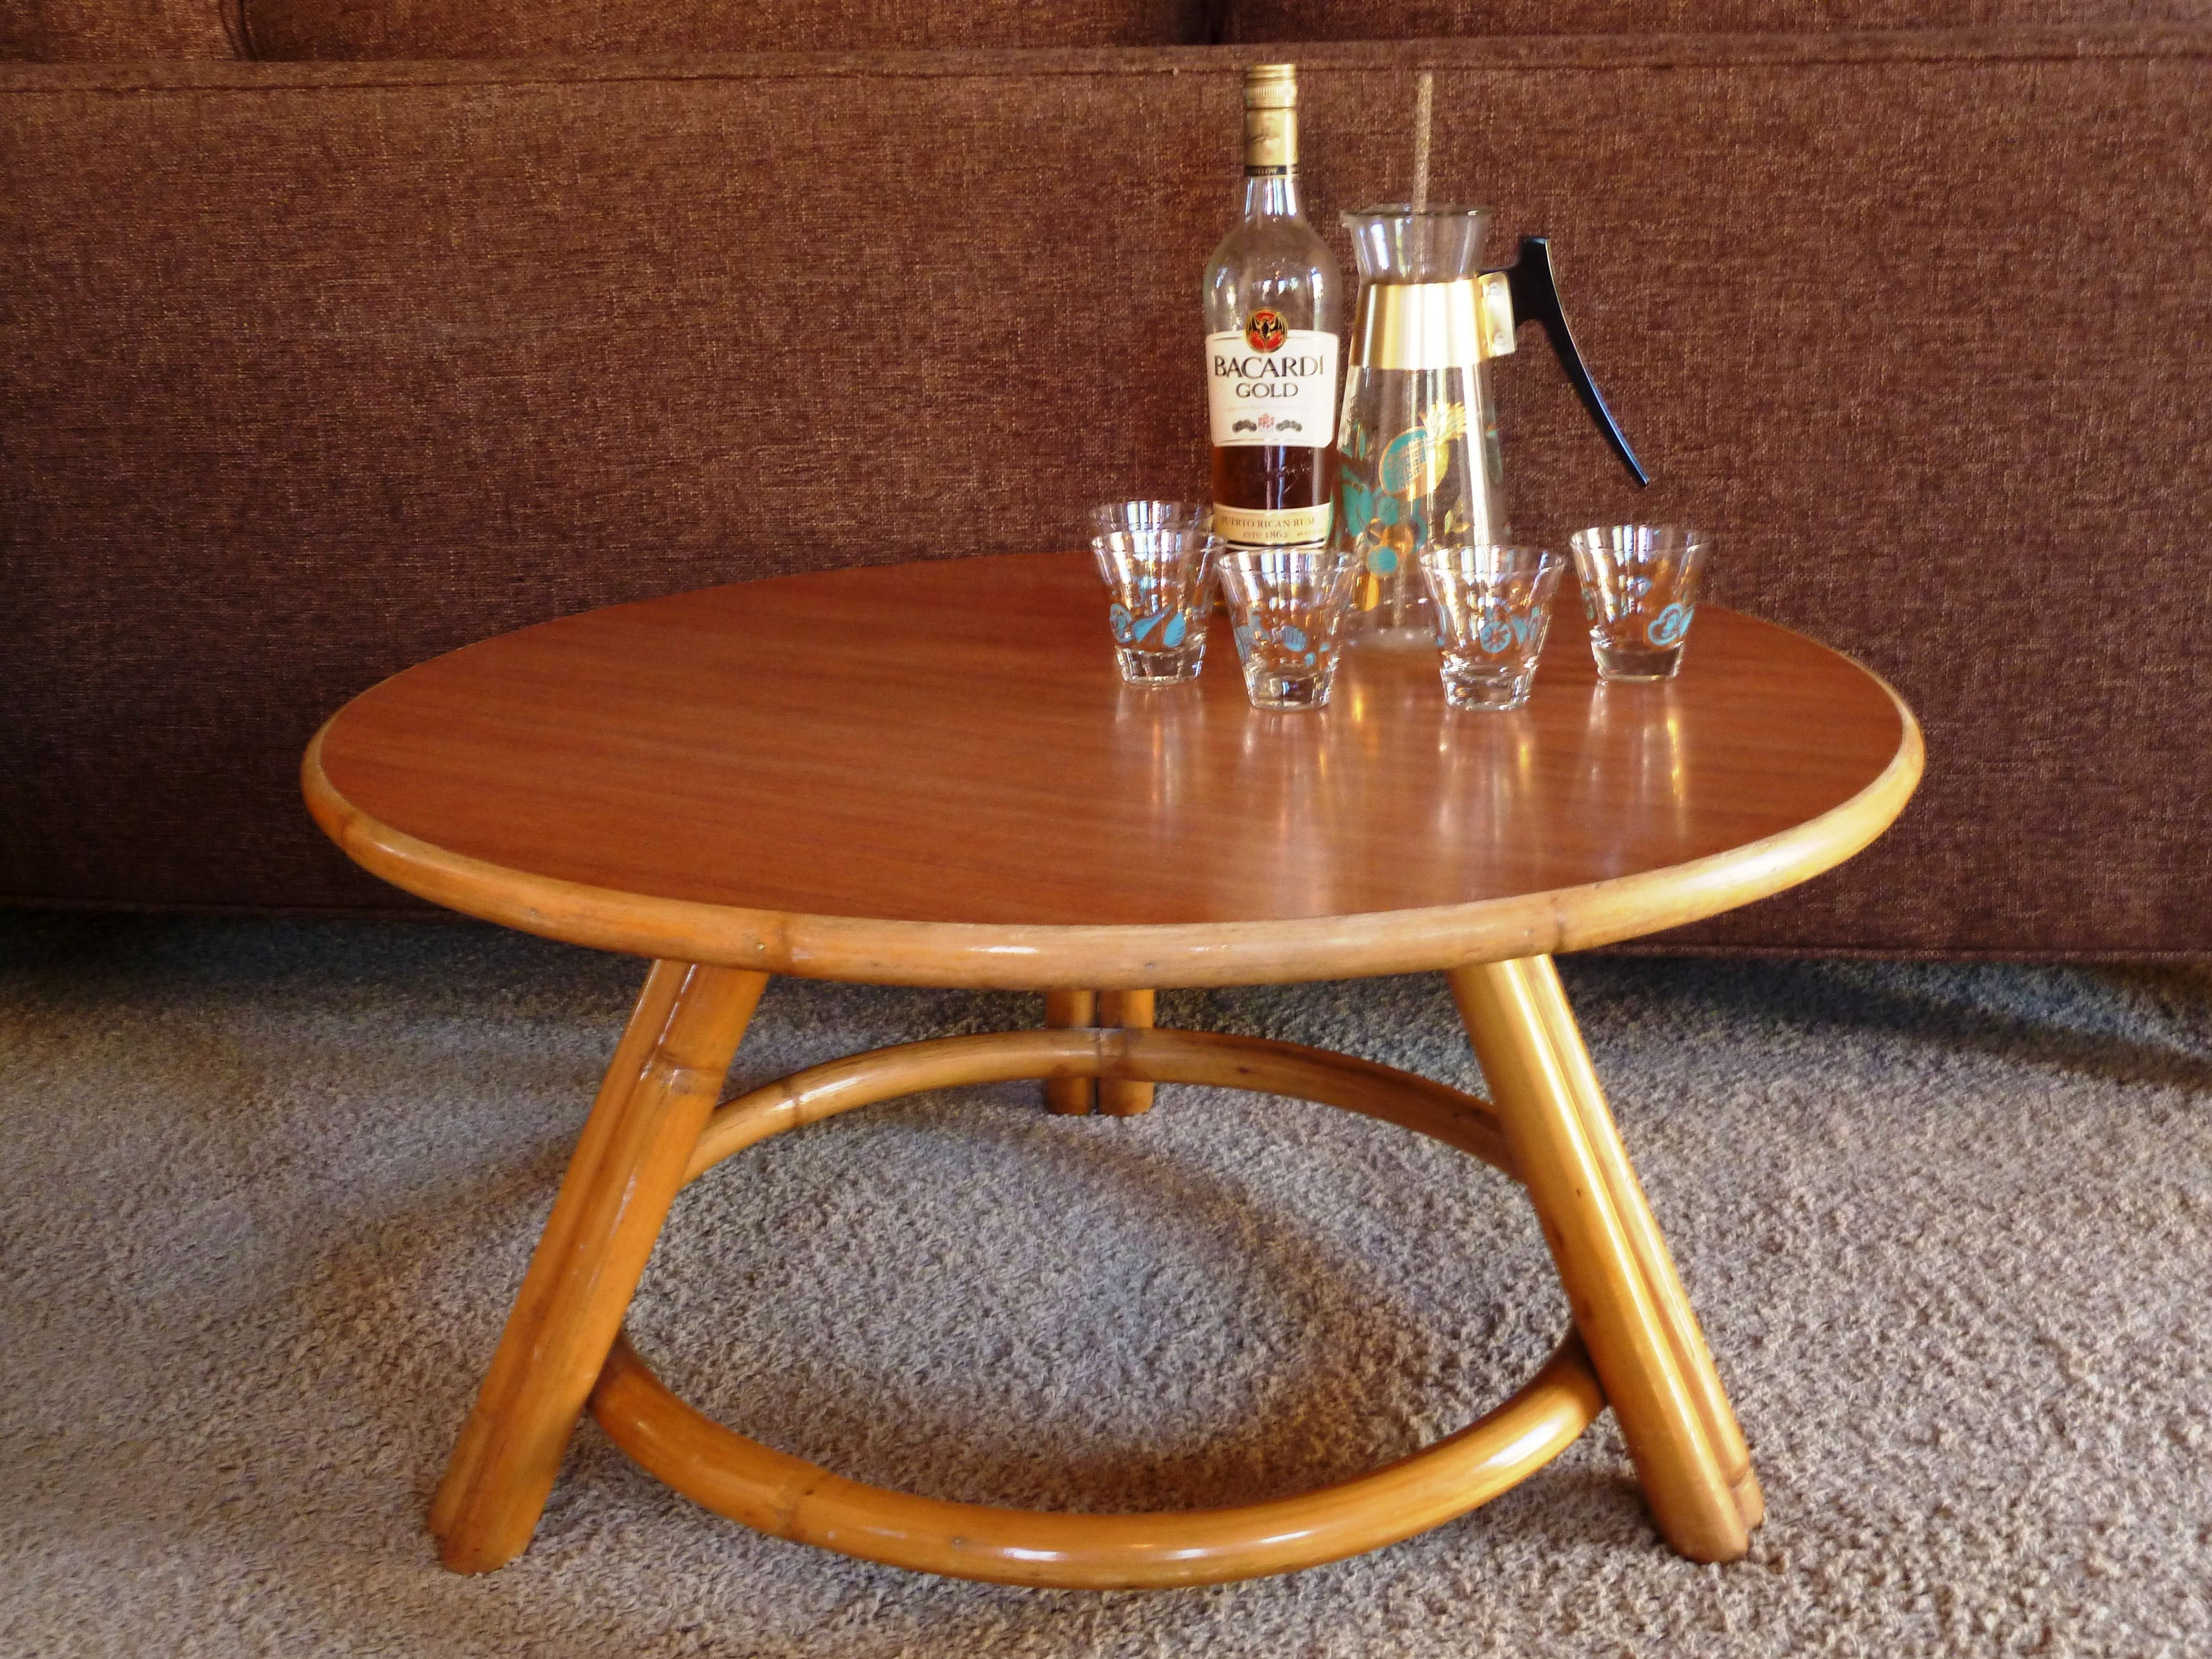 Vintage Rattan Coffee Table Designed By Paul Frankl For